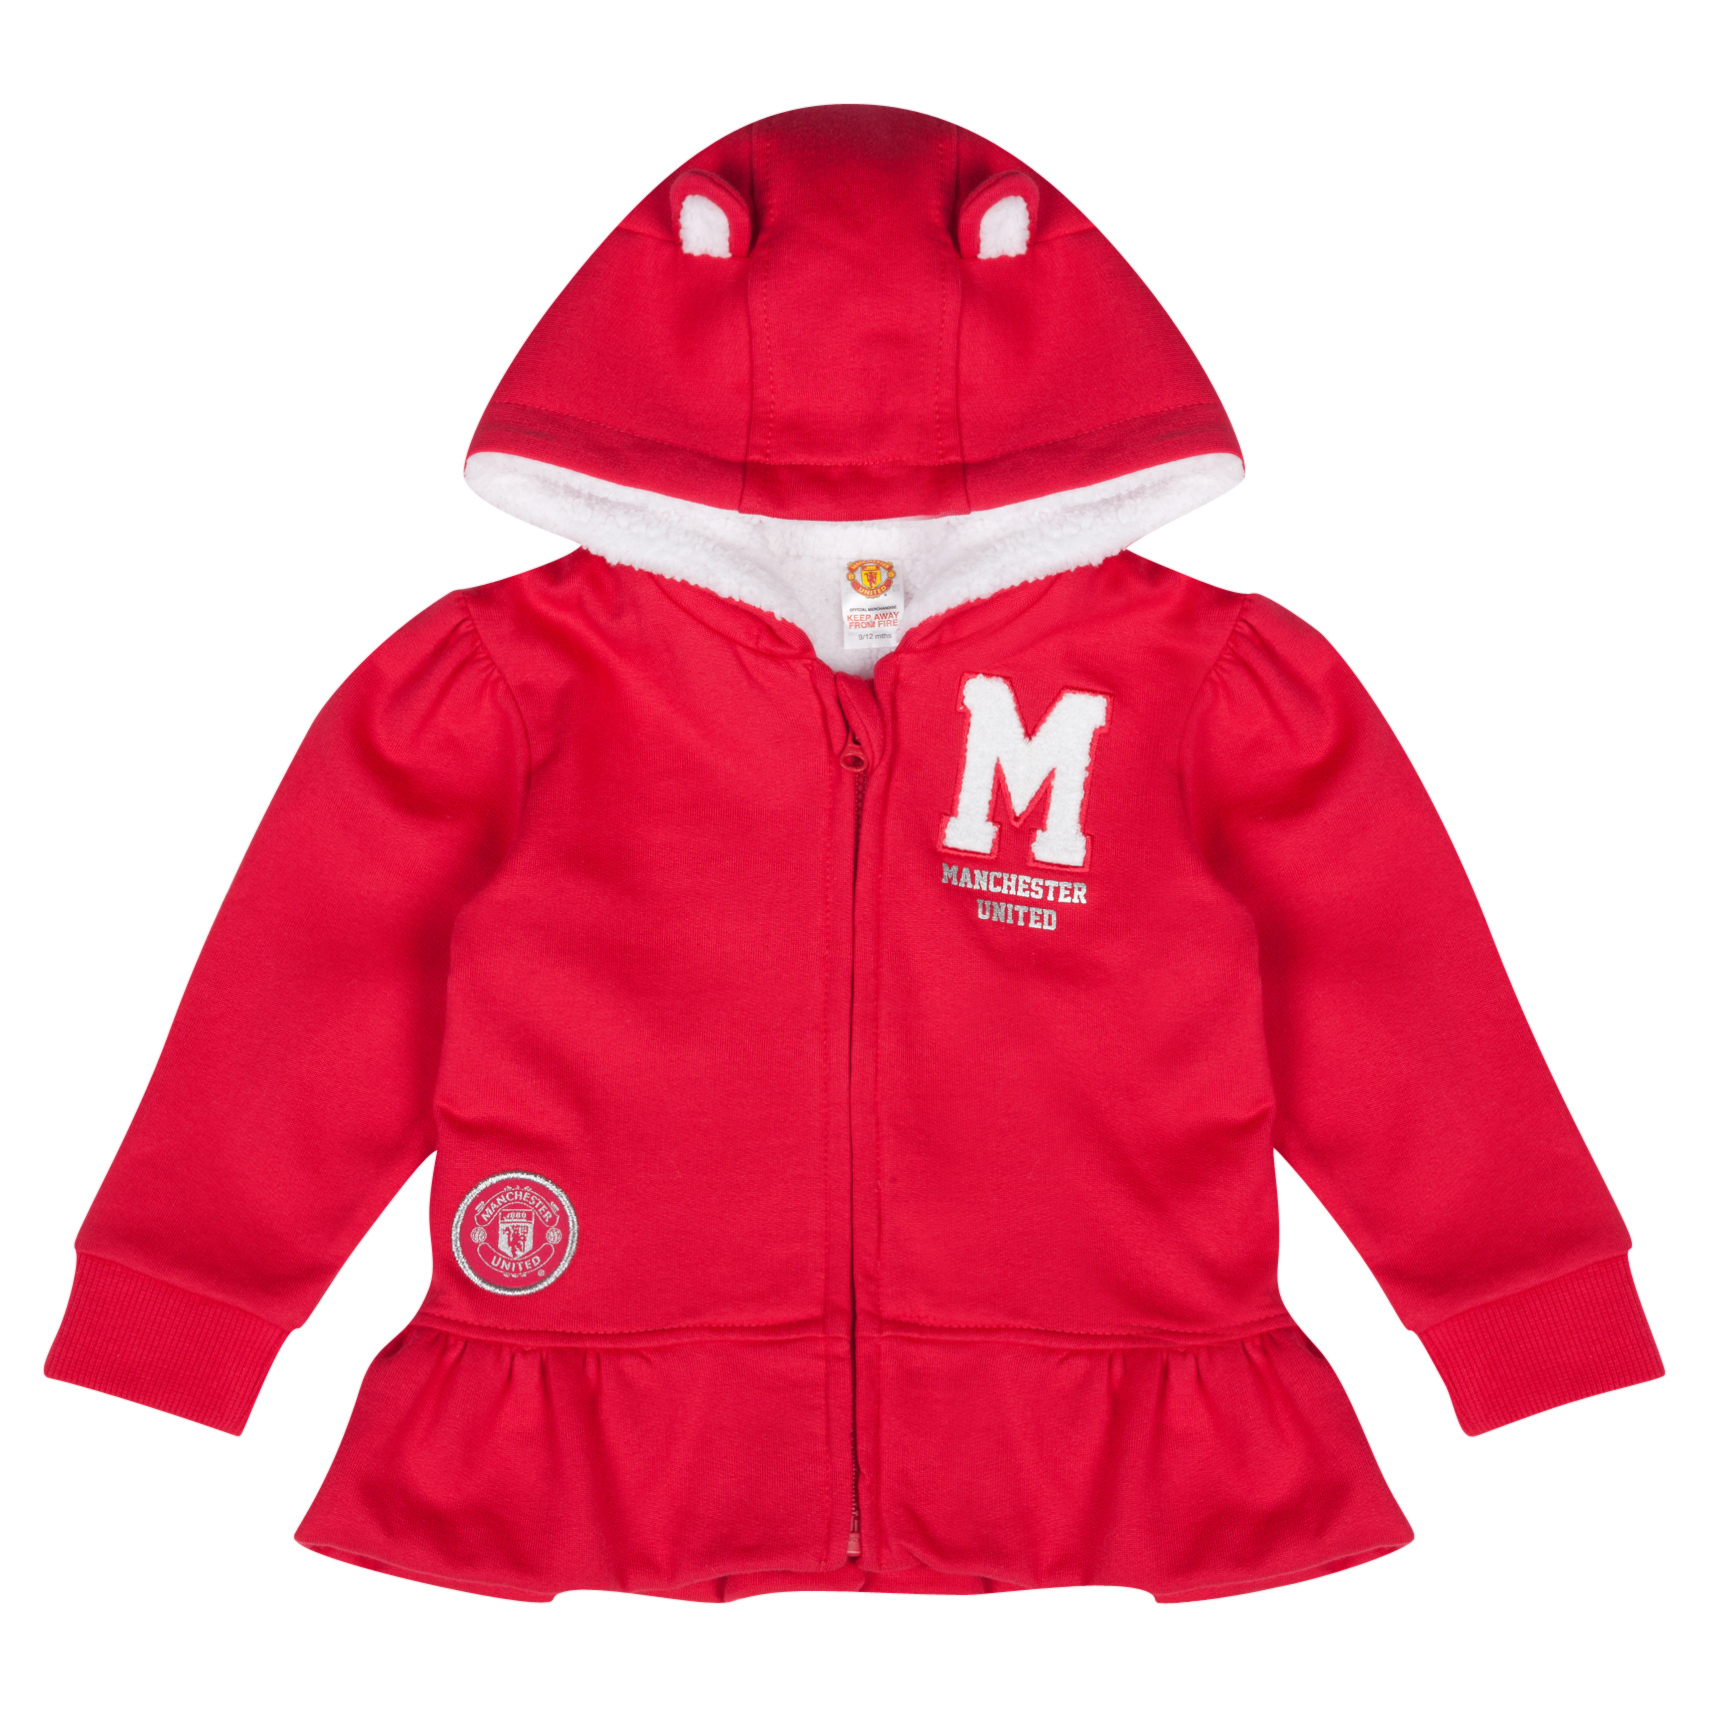 Manchester United Manchester United Frilly Full Zip Hoodie - Baby Girls Red